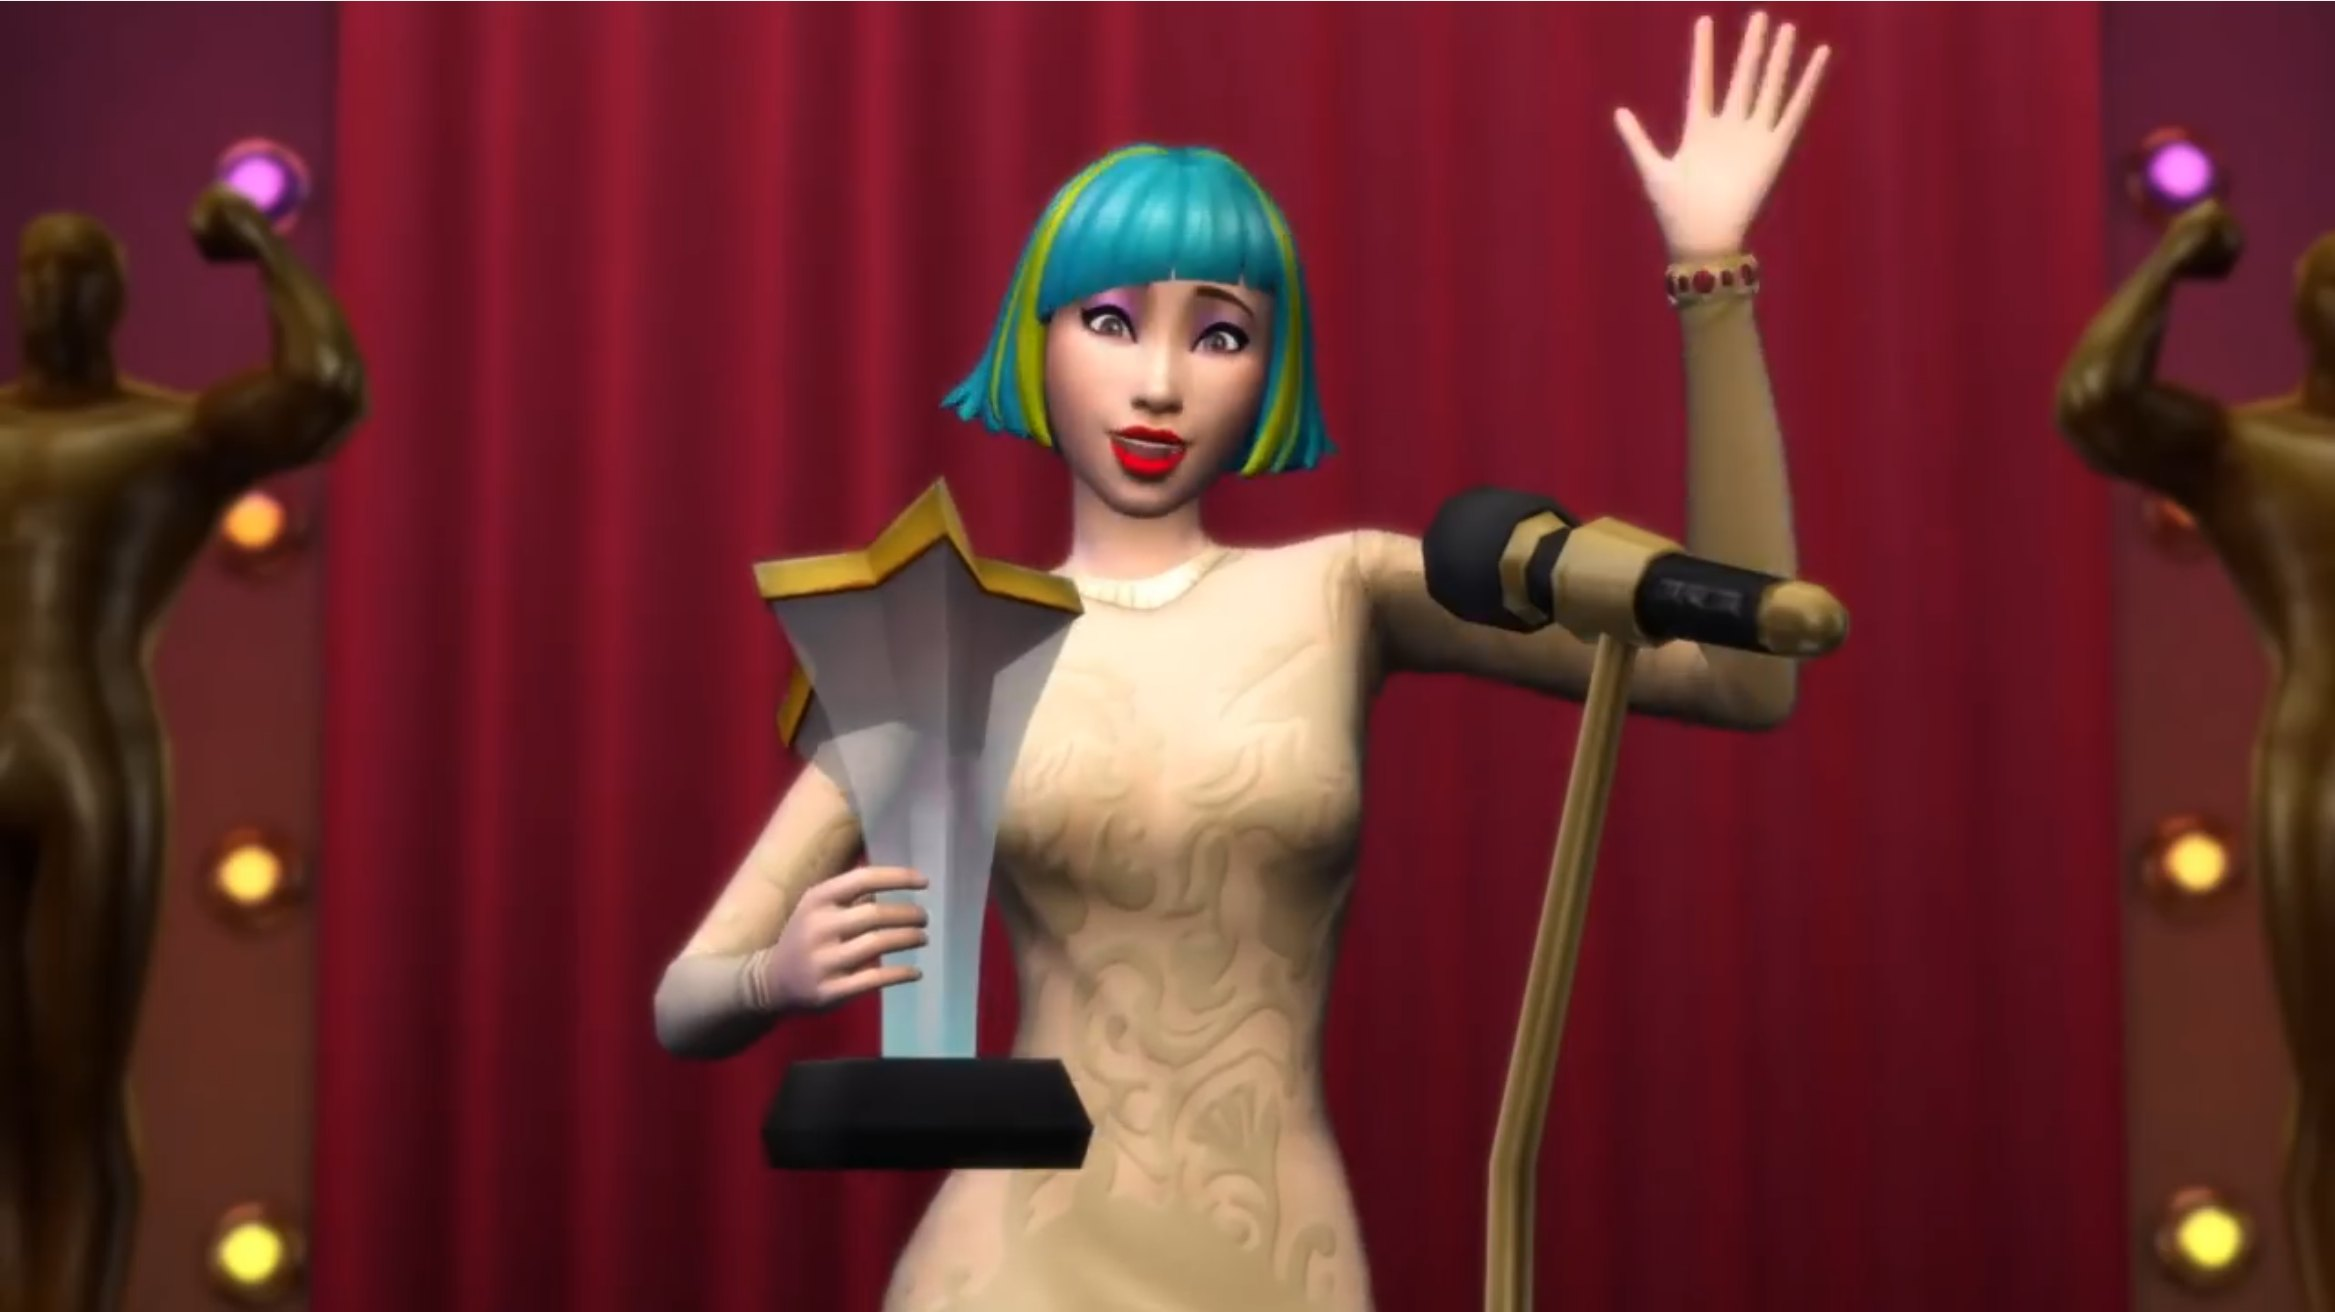 An Actor in The Sims 4 Get Famous Expansion accepts an award.